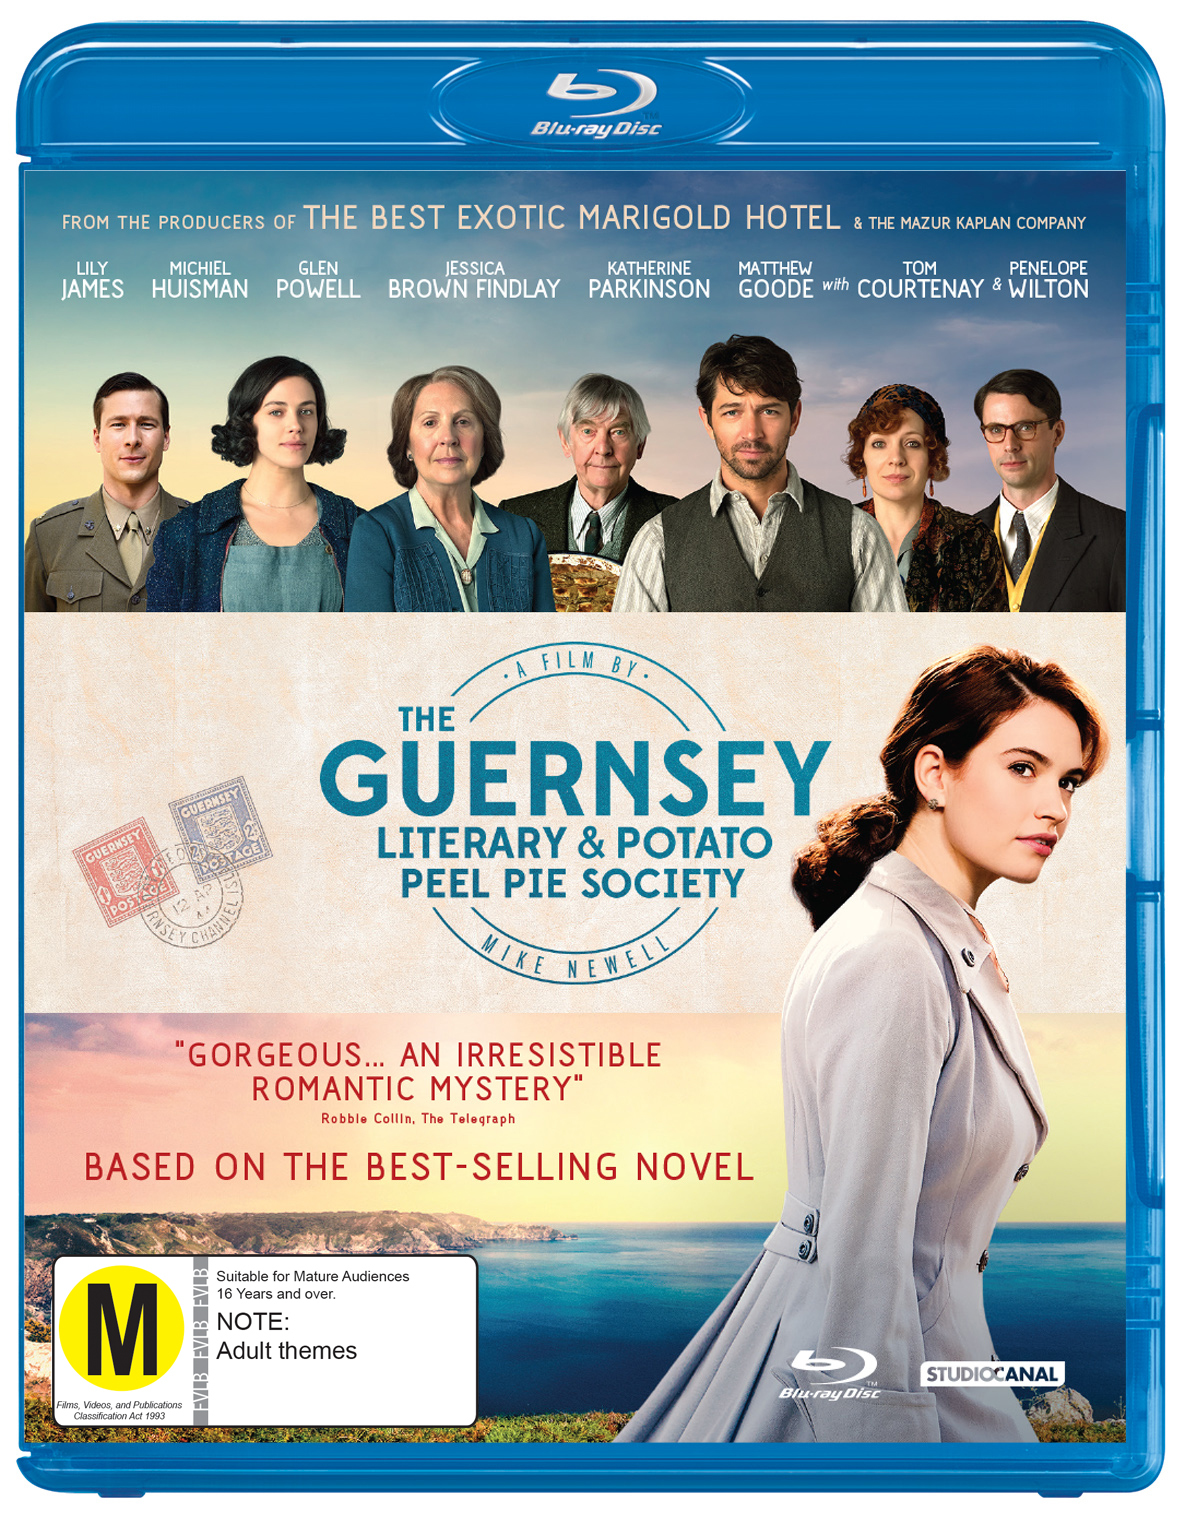 The Guernsey Literary And Potato Peel Society on Blu-ray image